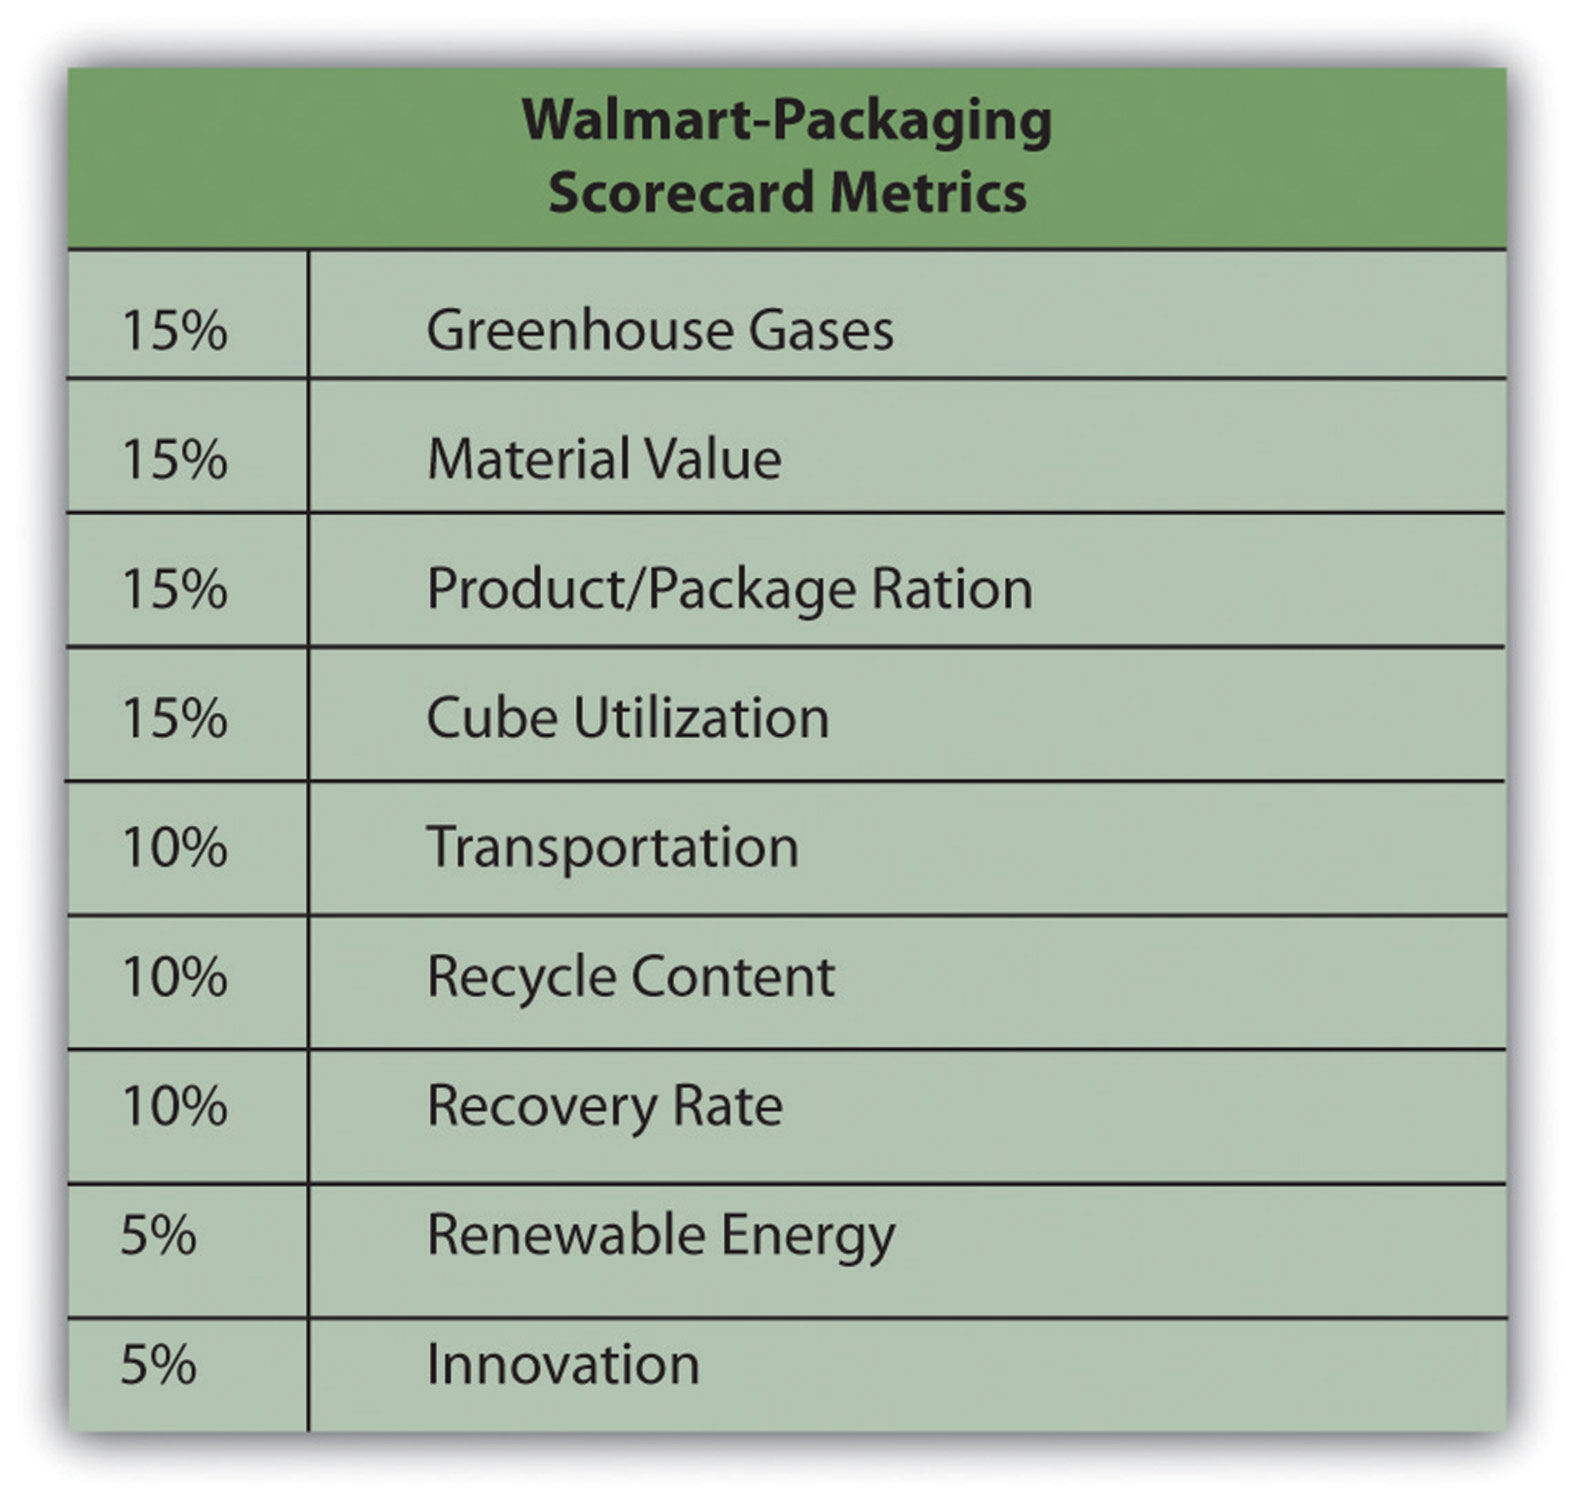 Walmart's sustainability strategy Research paper Academic